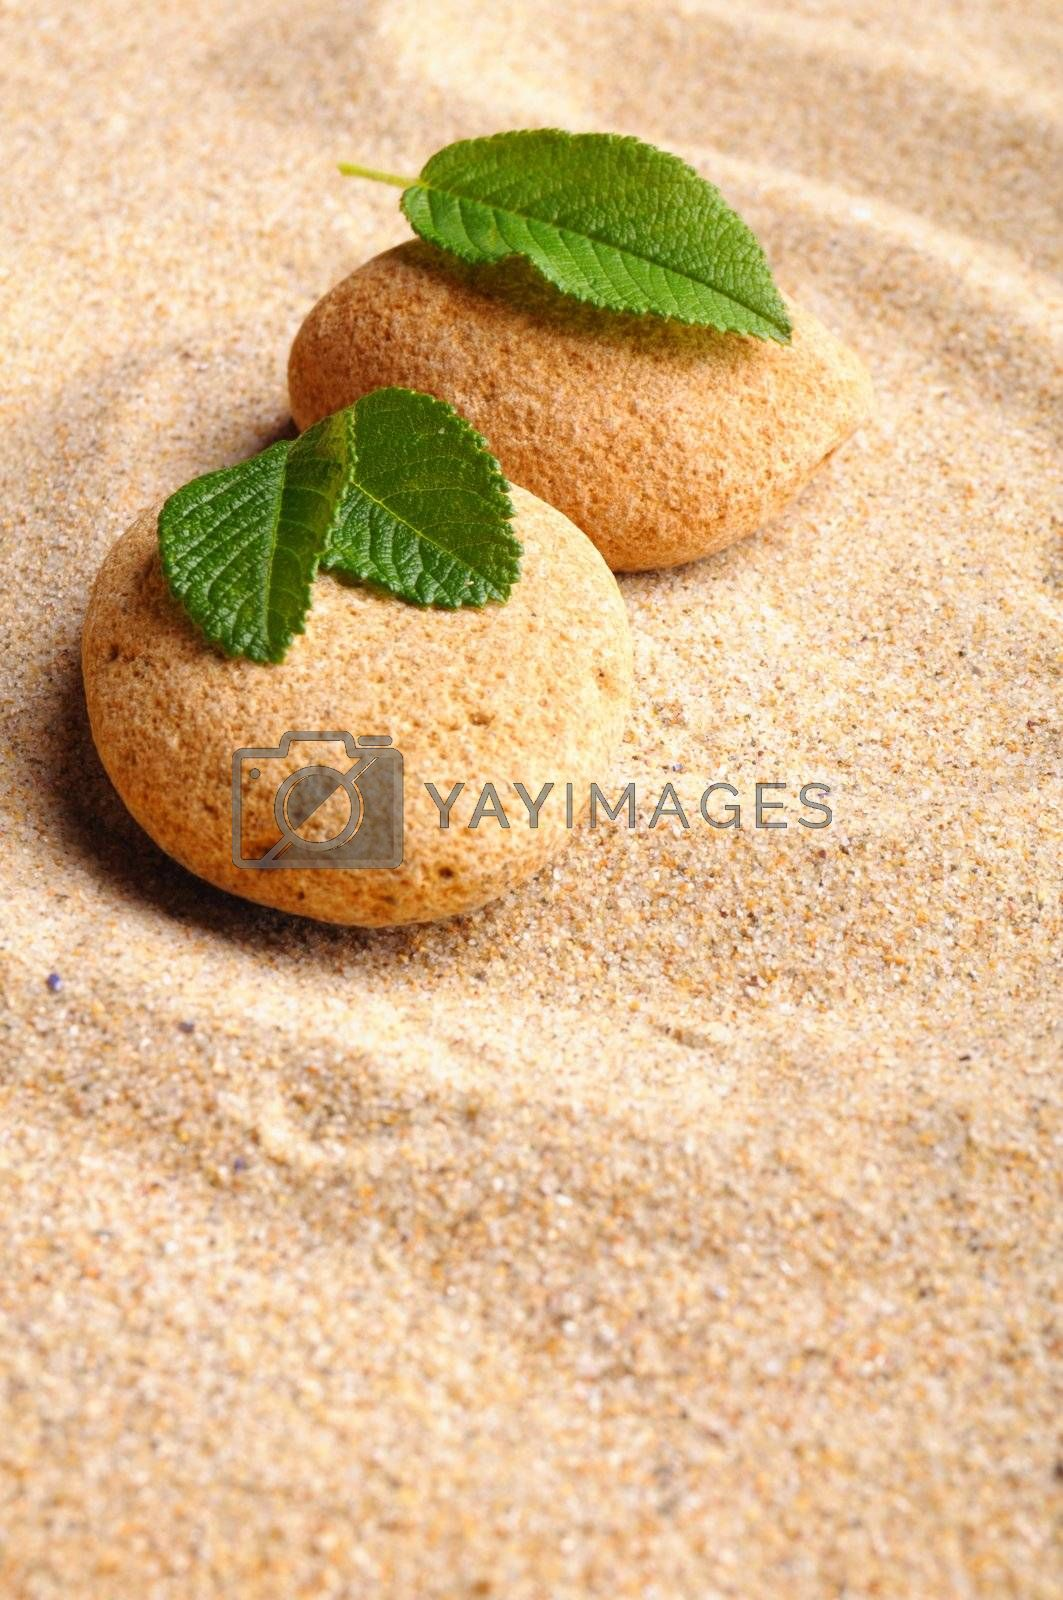 zen stone garden and leaf on sand showing spa concept